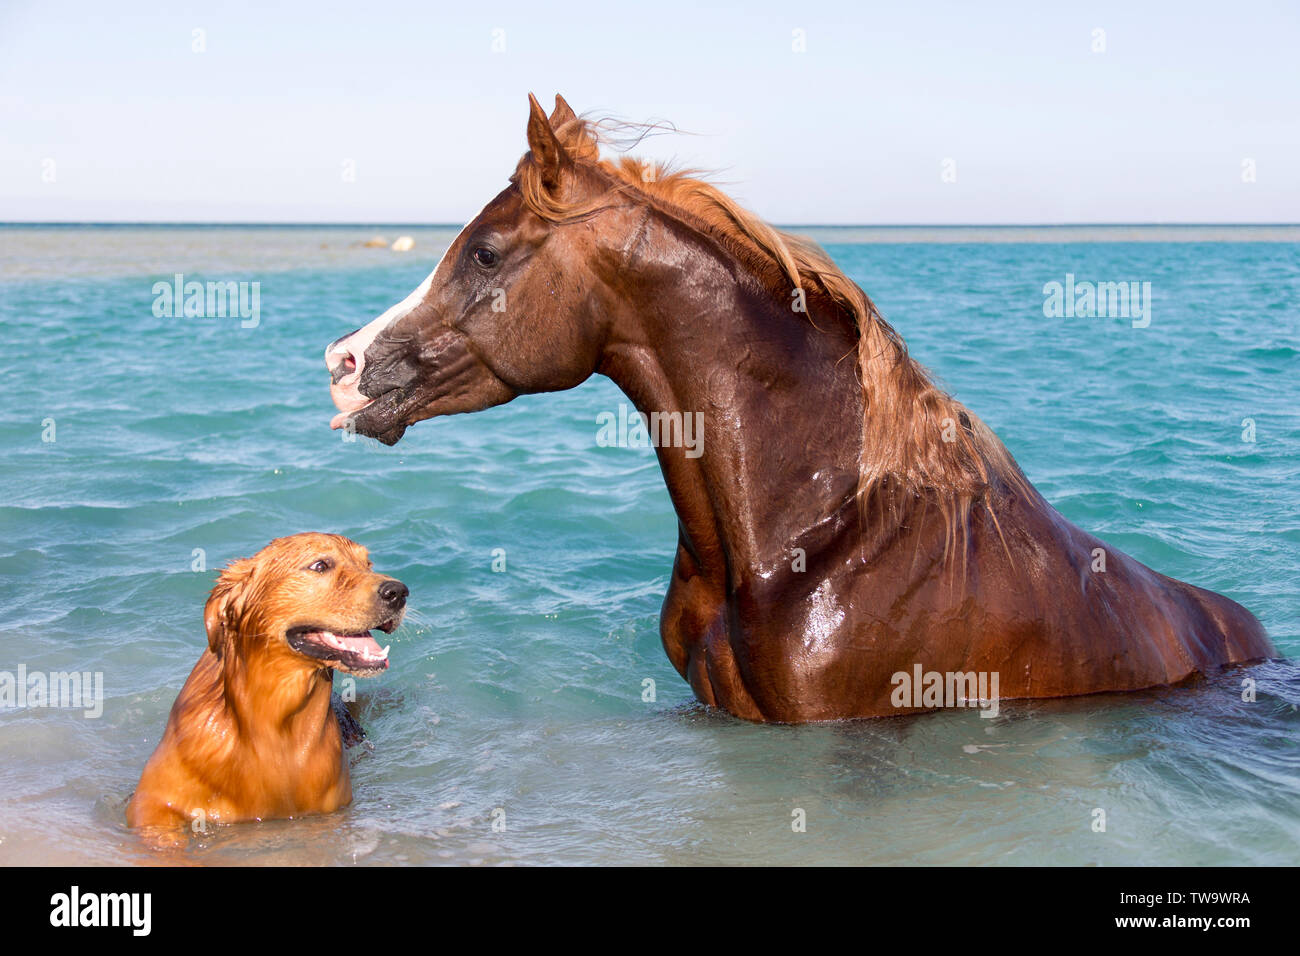 Arabian Horse Chestnut Stallion And Its Friend A Golden Retriever Sitting In The Sea Egypt Stock Photo Alamy